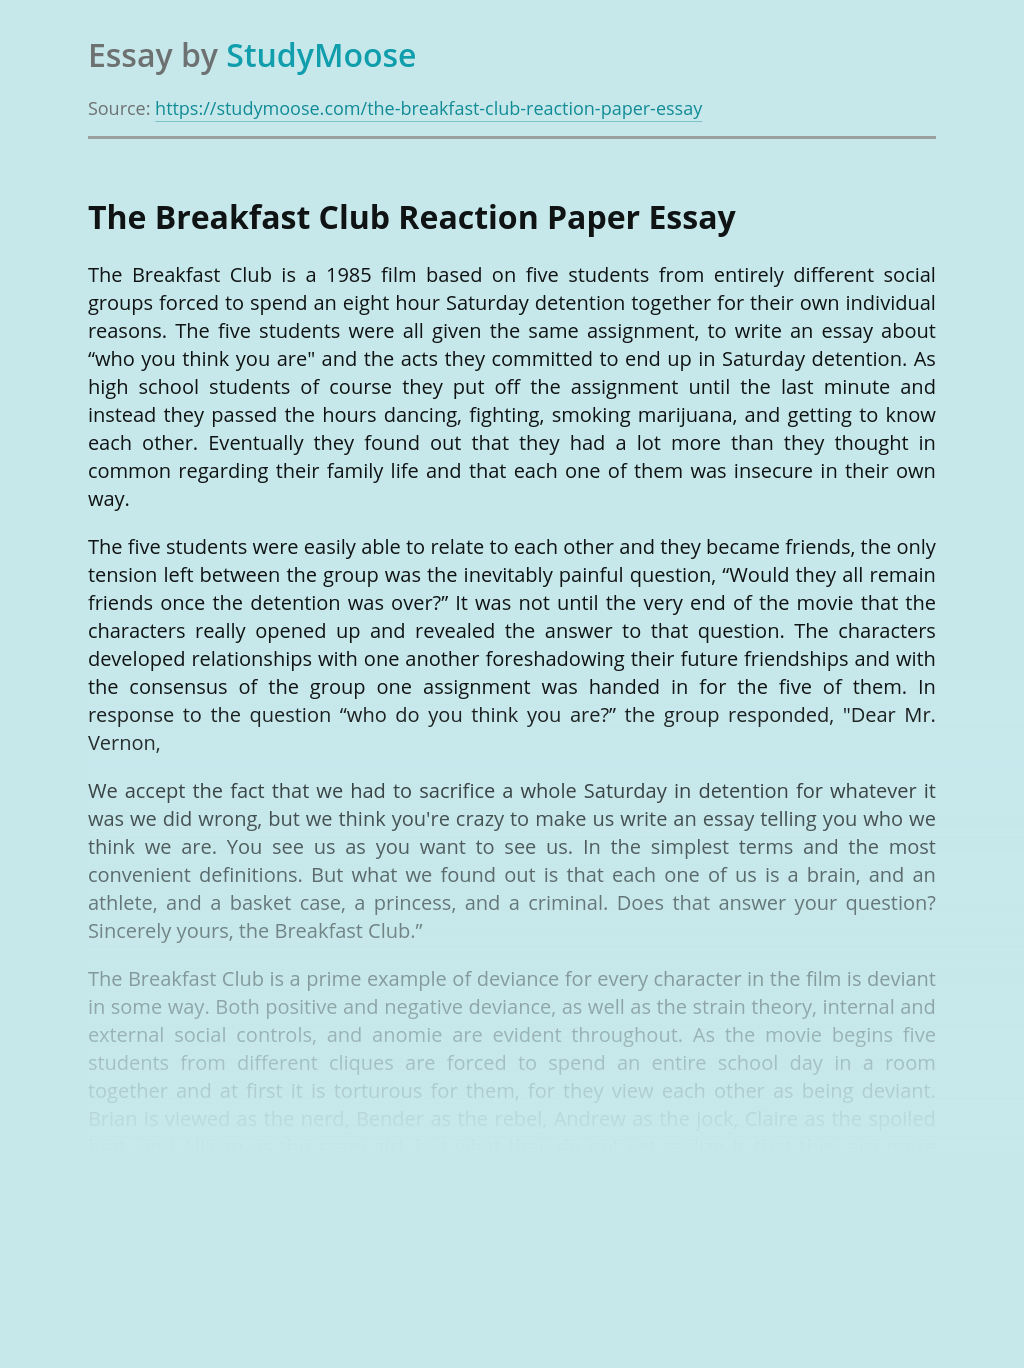 The Breakfast Club Reaction Paper